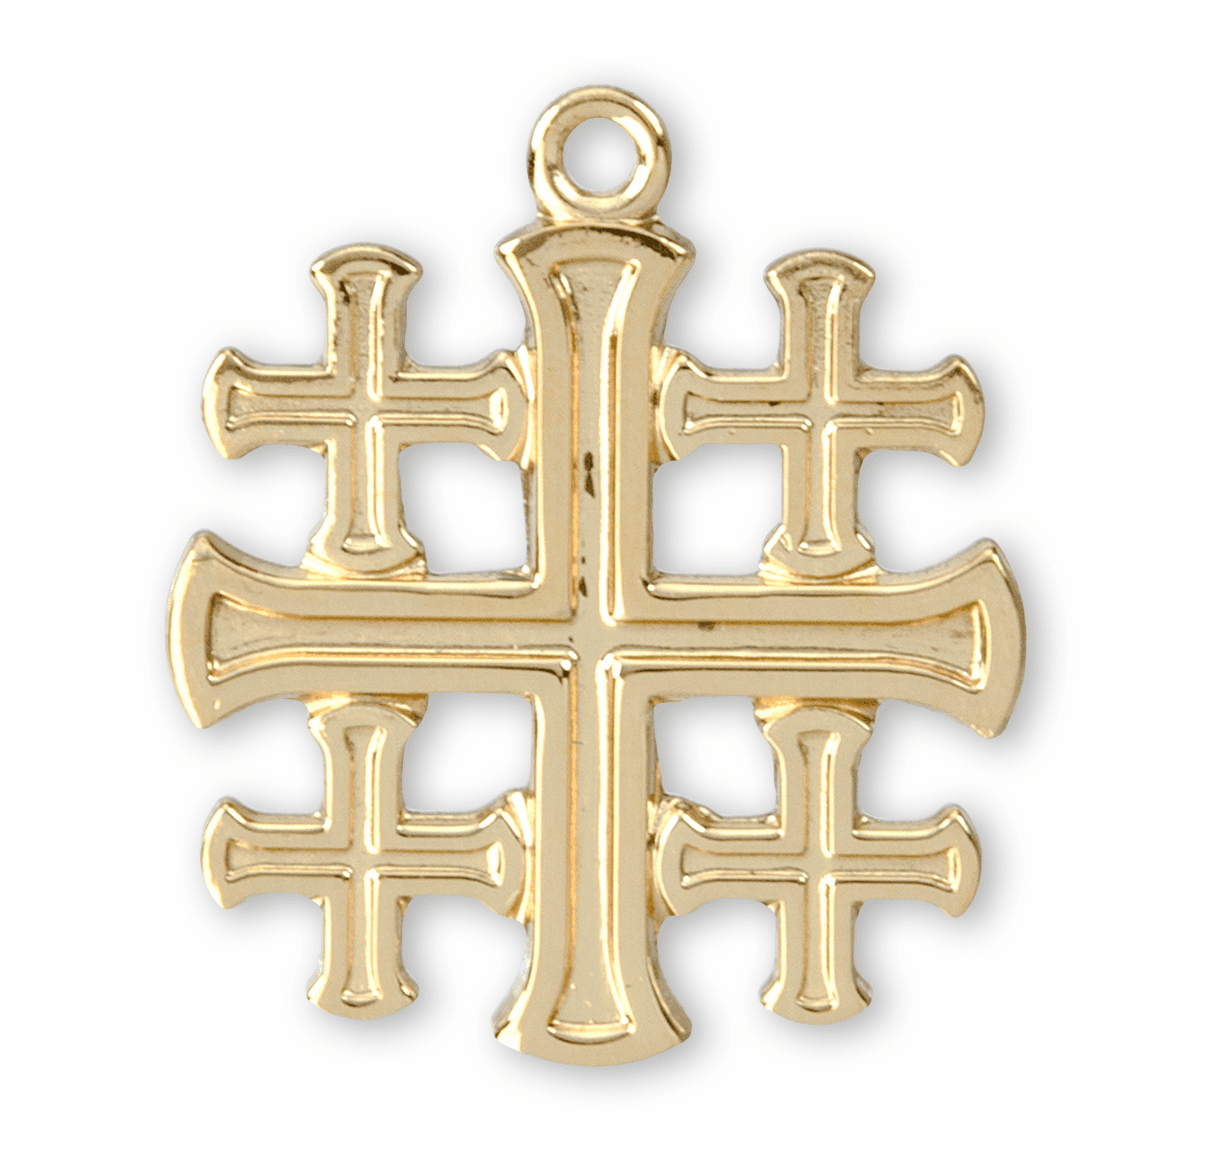 HMH Religious Solid 14kt Gold Crucifix, Cross and Pendant Jewelry